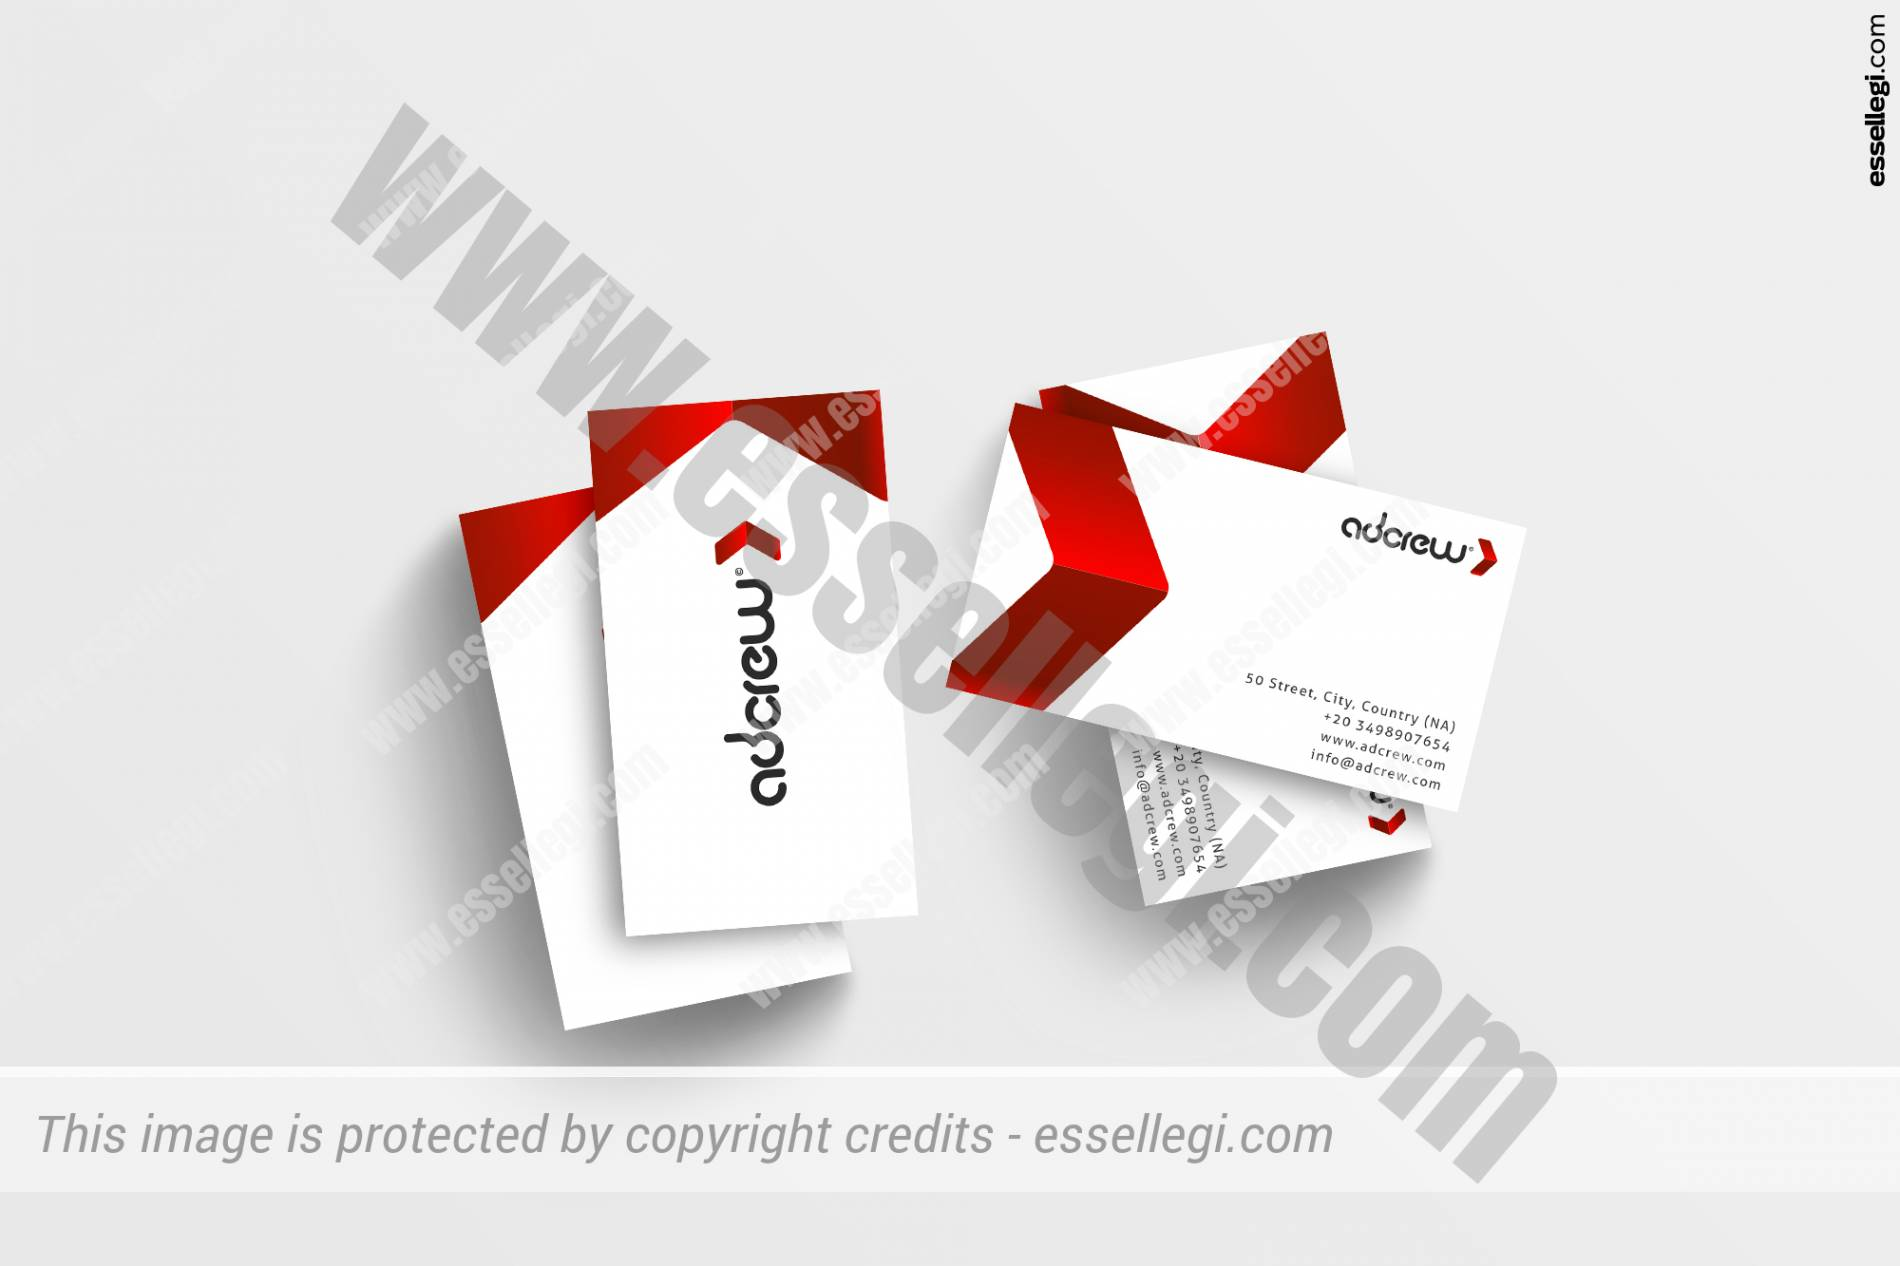 Business Card Design. AdCrew Advertising Marketing Agency Brand Identity Design by Essellegi Design